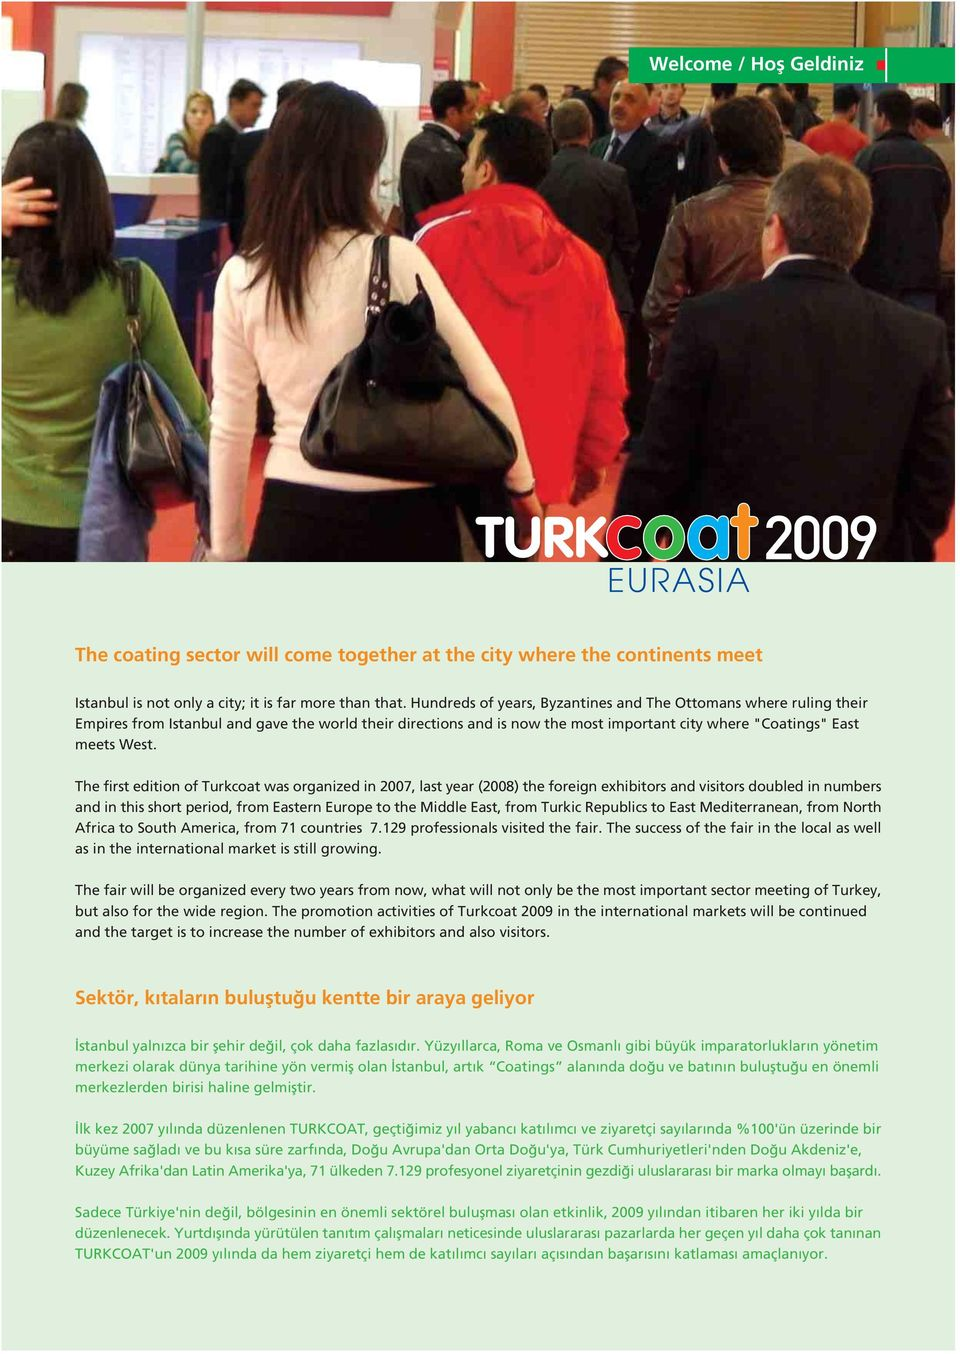 The first edition of Turkcoat was organized in 2007, last year (2008) the foreign exhibitors and visitors doubled in numbers and in this short period, from Eastern Europe to the Middle East, from